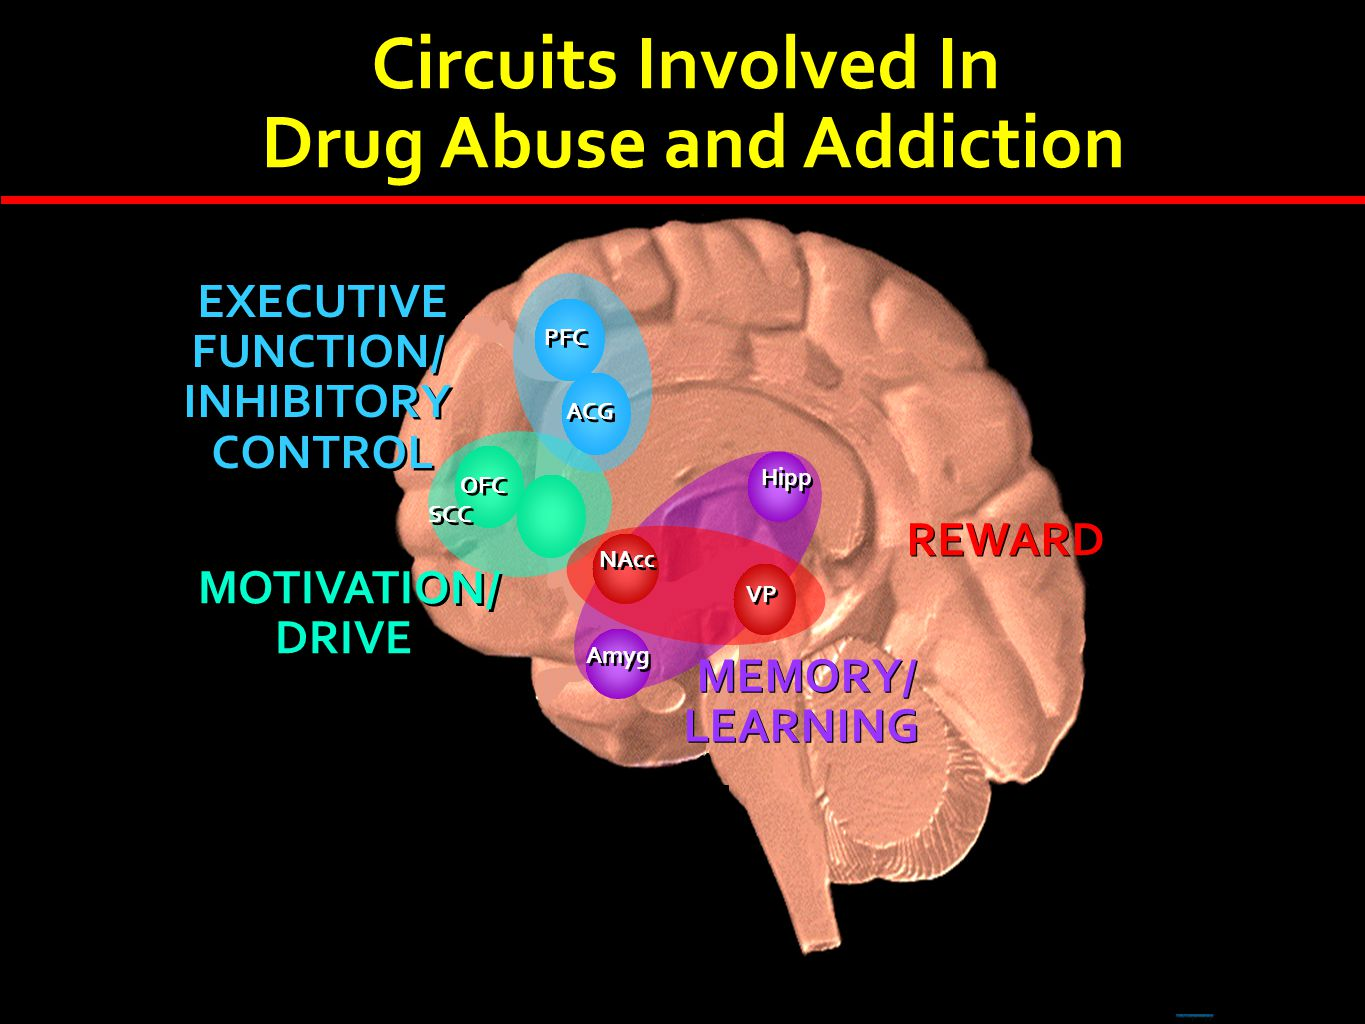 OFC SCC MOTIVATION/ DRIVE MOTIVATION/ DRIVE Hipp Amyg MEMORY/ LEARNING MEMORY/ LEARNING Circuits Involved In Drug Abuse and Addiction Circuits Involve